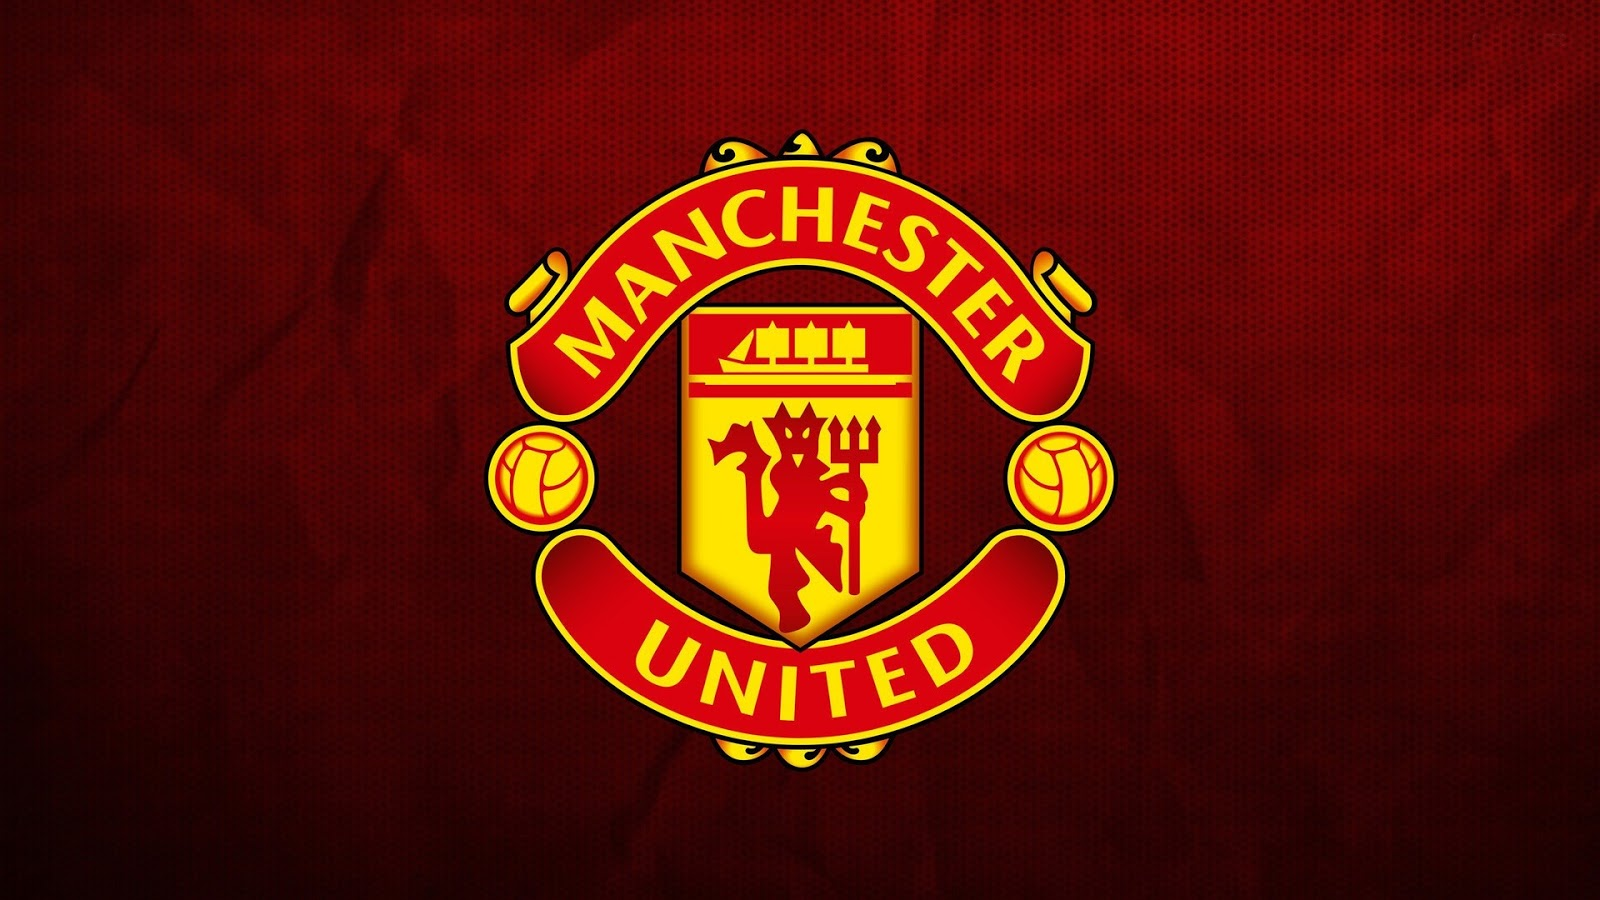 Manchester United FC New HD Wallpapers 2013-2014